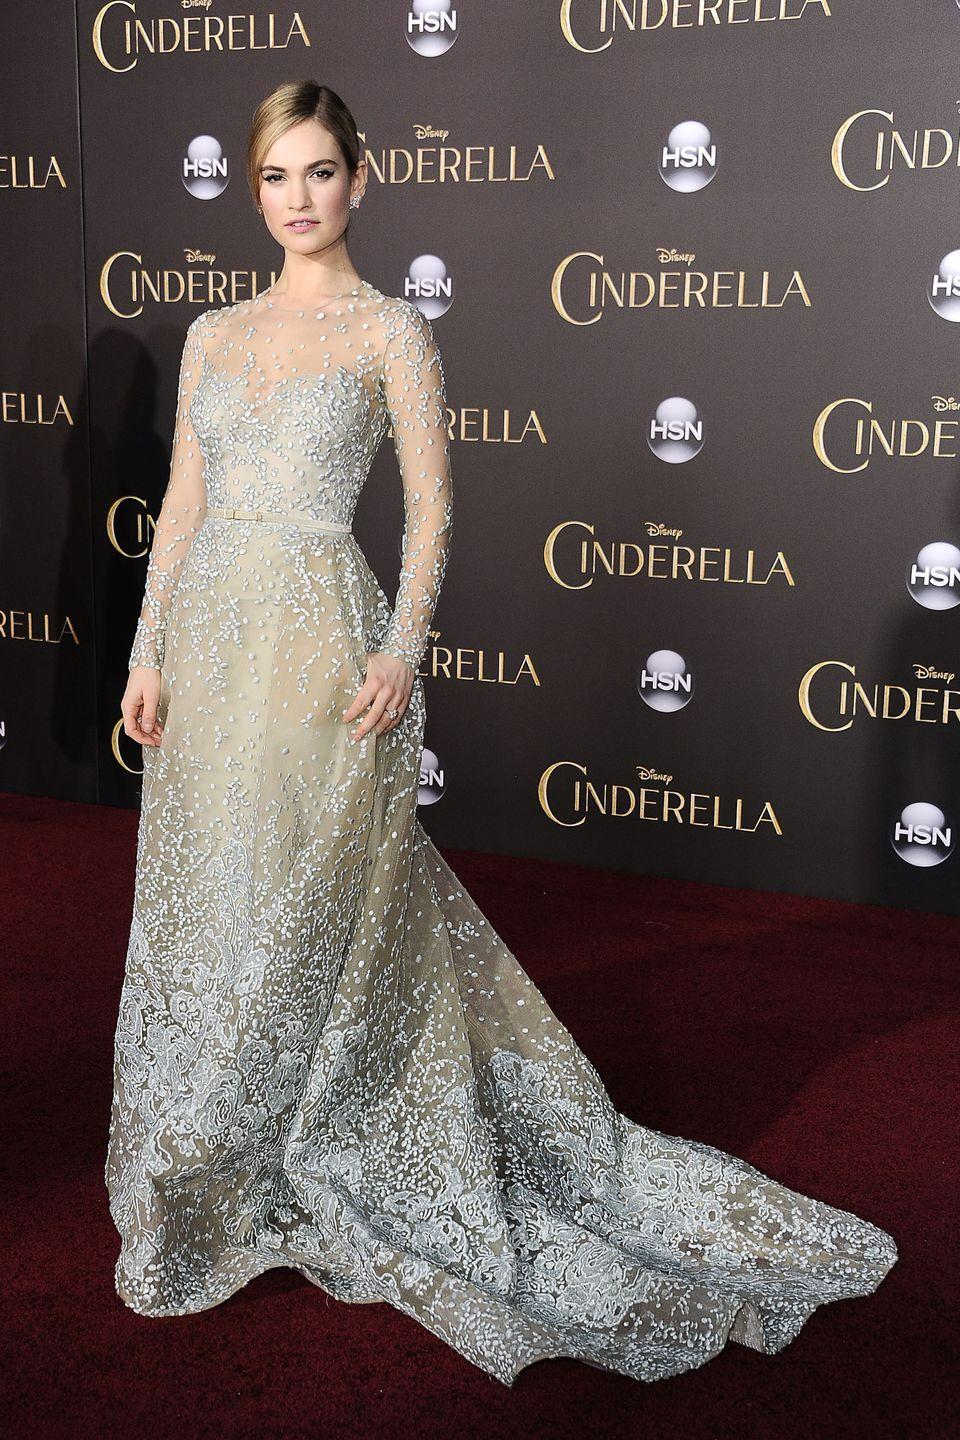 <p>Lily James played the live-action version of<em> Cinderella </em>in 2015, so it was fitting that the actress paid homage to her character's iconic blue dress at the premiere.</p>